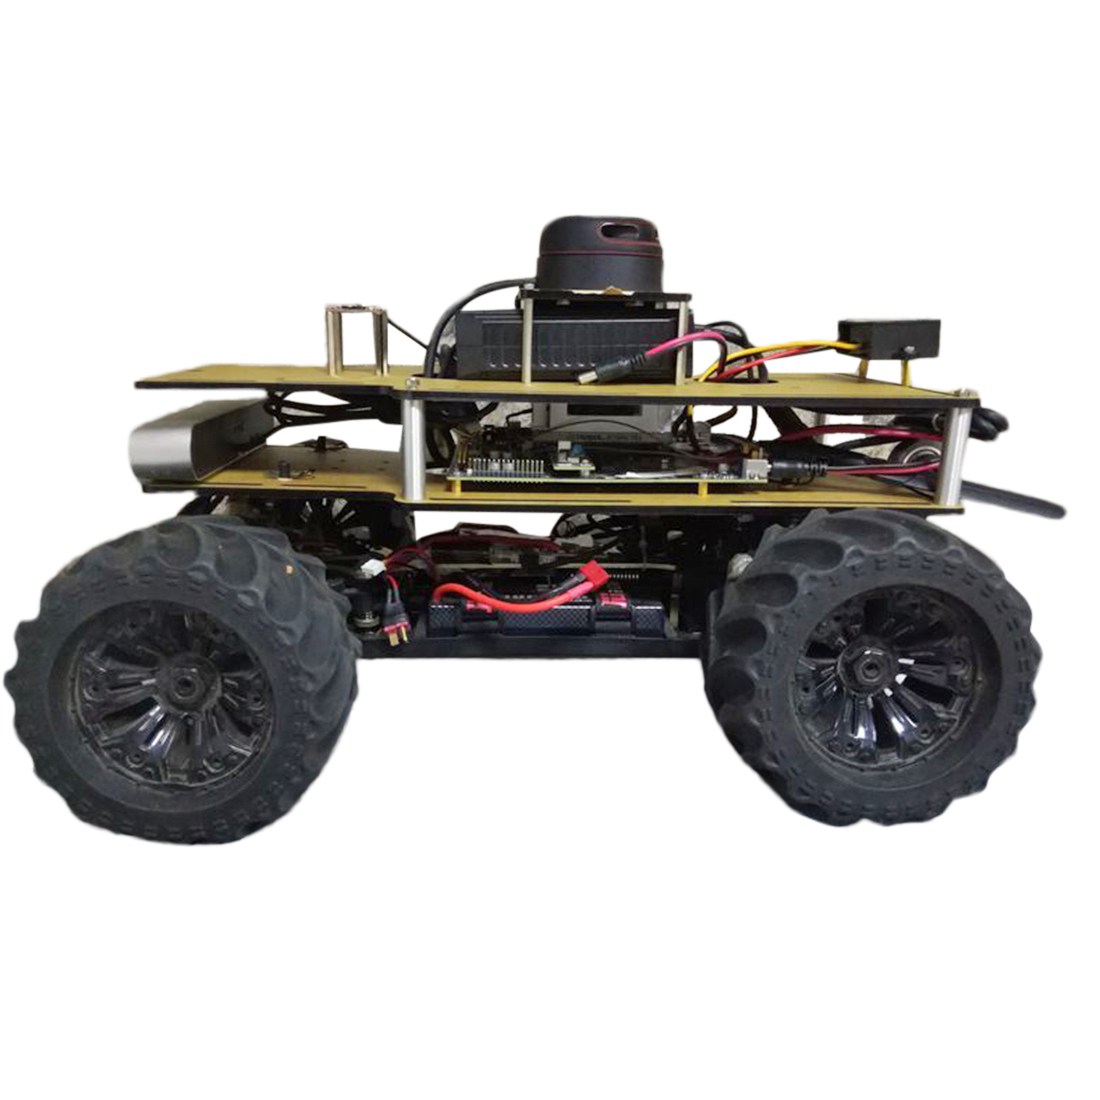 1/10 Programmable ROS Robot Ackerman Suspension Autopilot Ride Kit For Jetson TX2 Children Developmental Toys - Outdoor Version